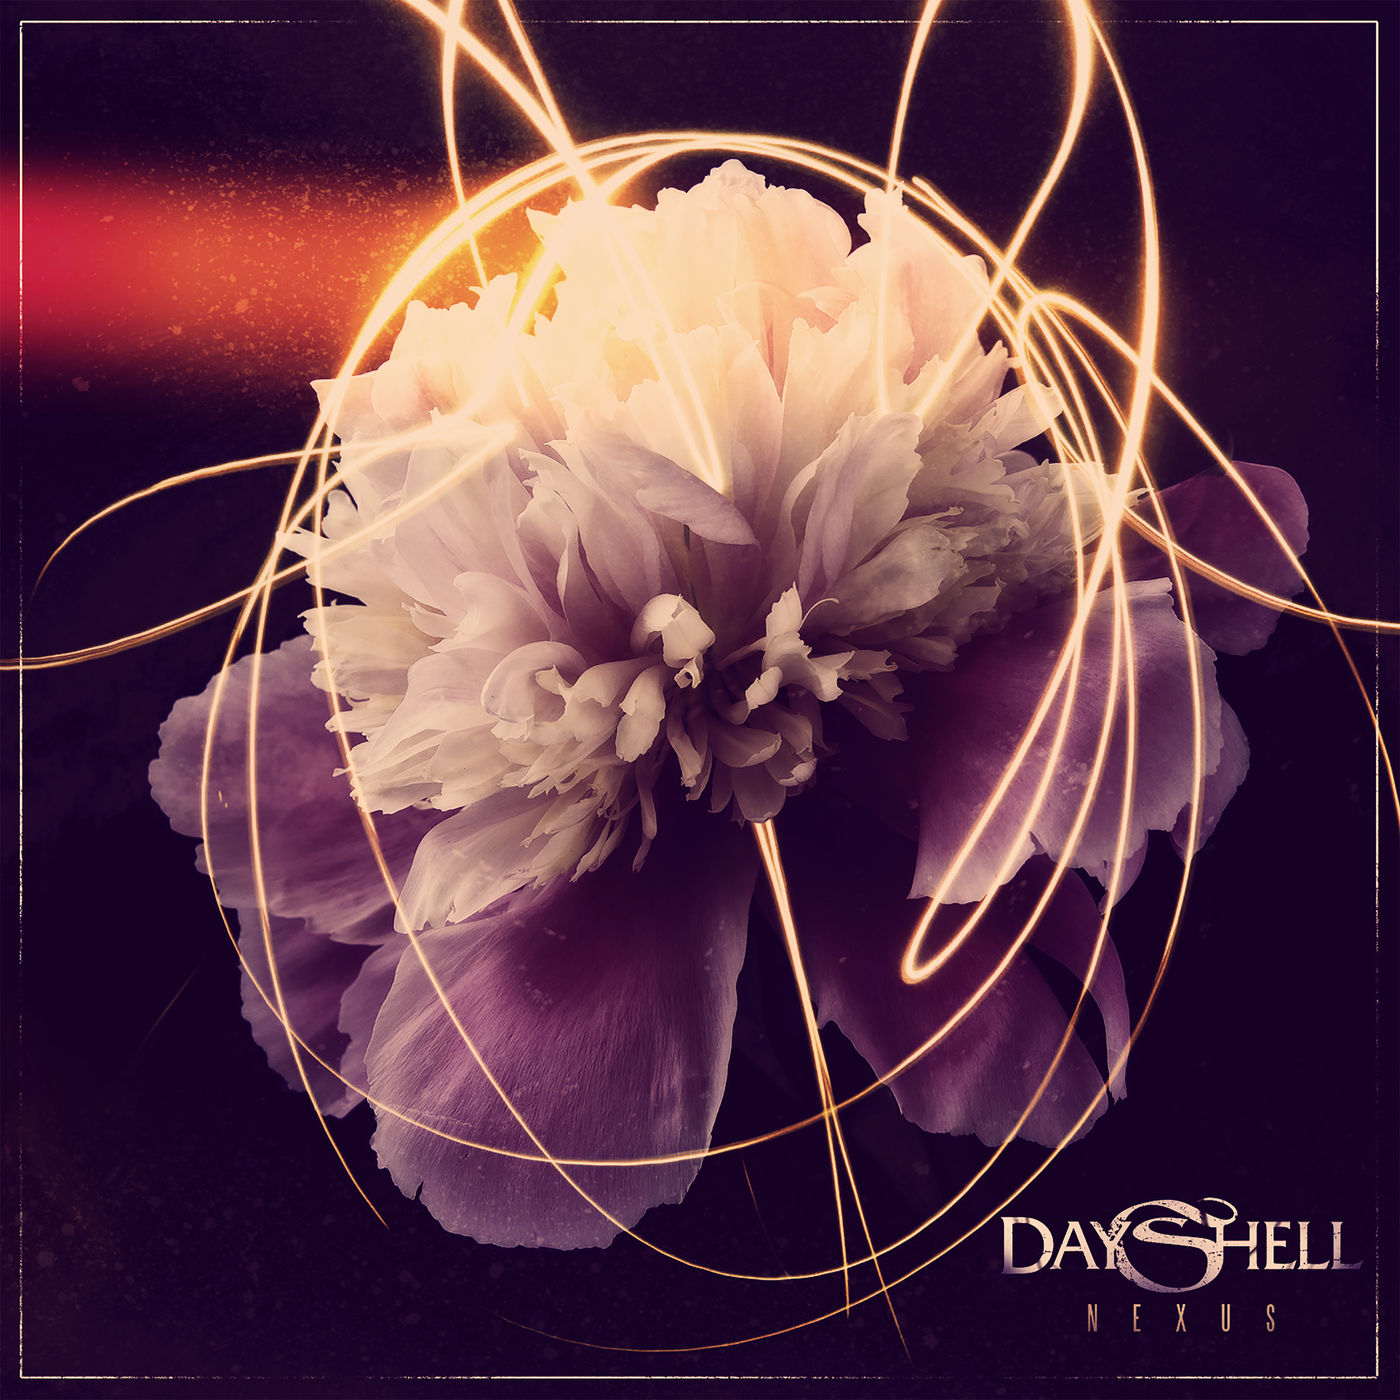 Dayshell - Low Light [single] (2016)